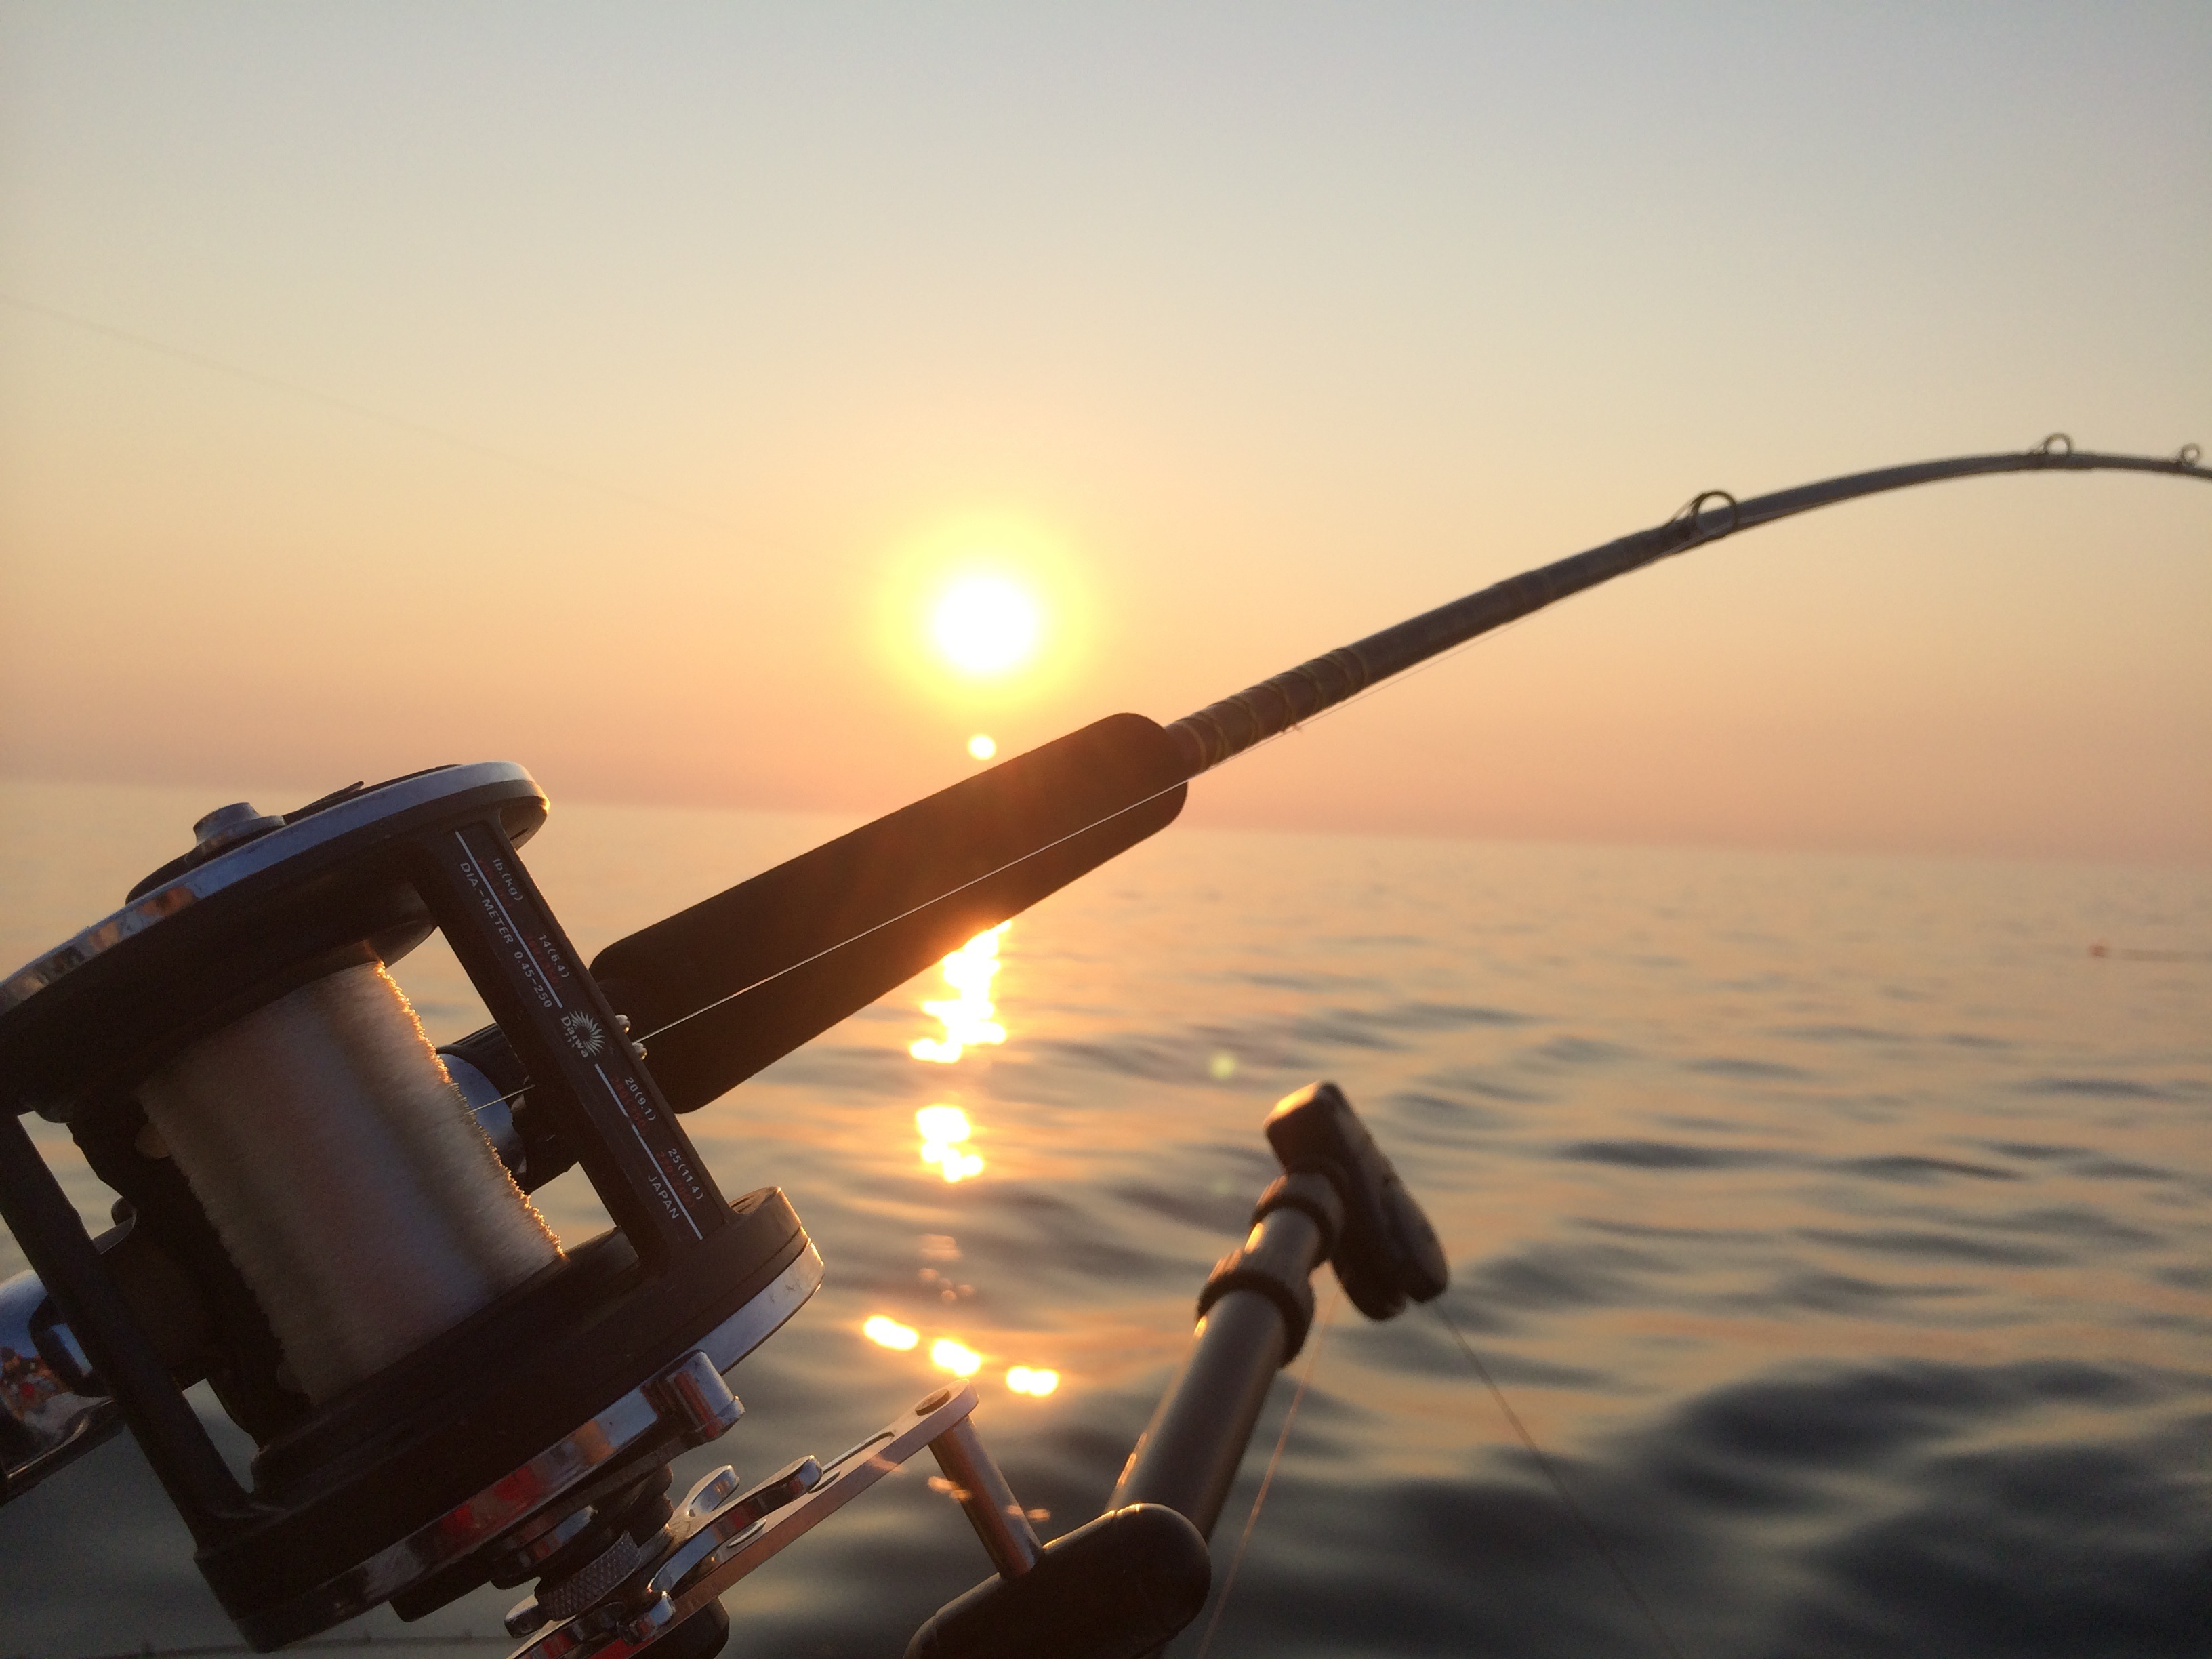 sea-water-nature-outdoor-sky-sunshine-fog-sunrise-sunset-morning-lake-view-dawn-summer-dusk-vehicle-tranquil-fishing-natural-scenery-calm-colorful-fishing-rod-fishing-pole-scene-872340